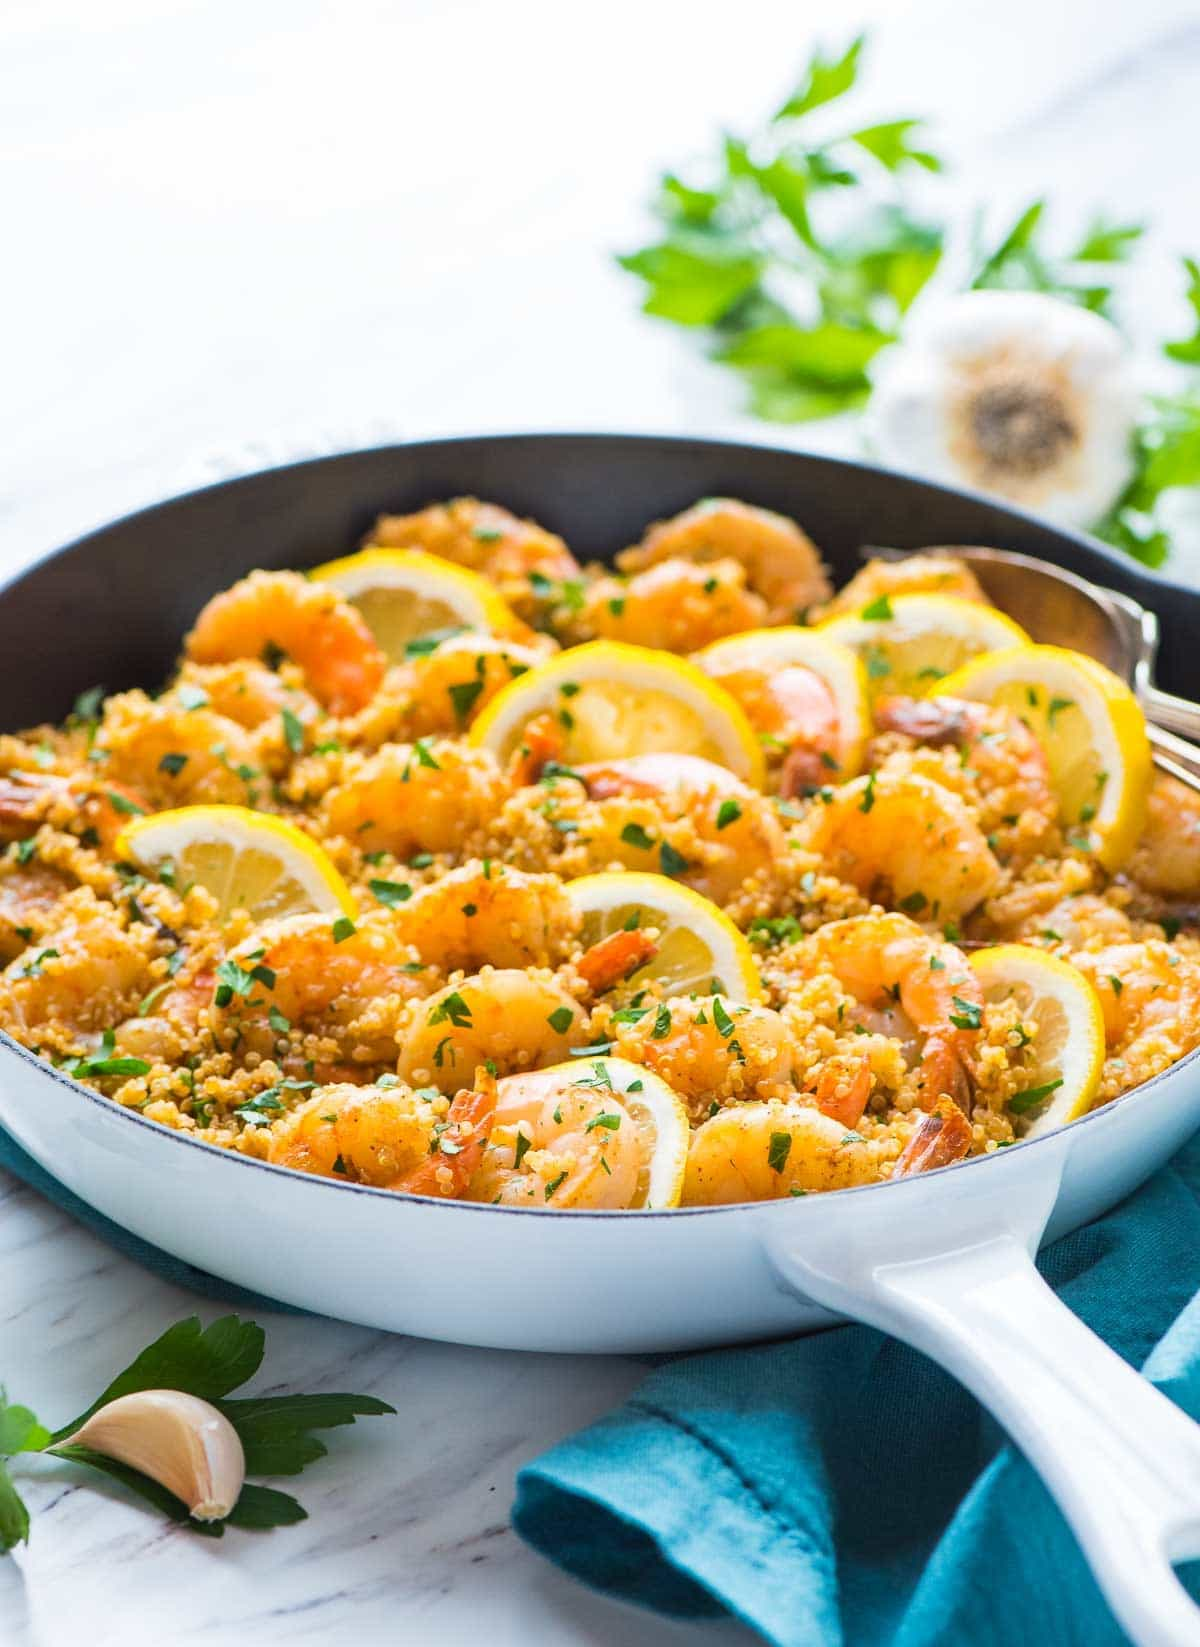 ONE PAN Garlic Shrimp with Quinoa. Quick, easy and delicious! Your whole family will love this healthy recipe. Recipe at wellplated.com | @wellplated